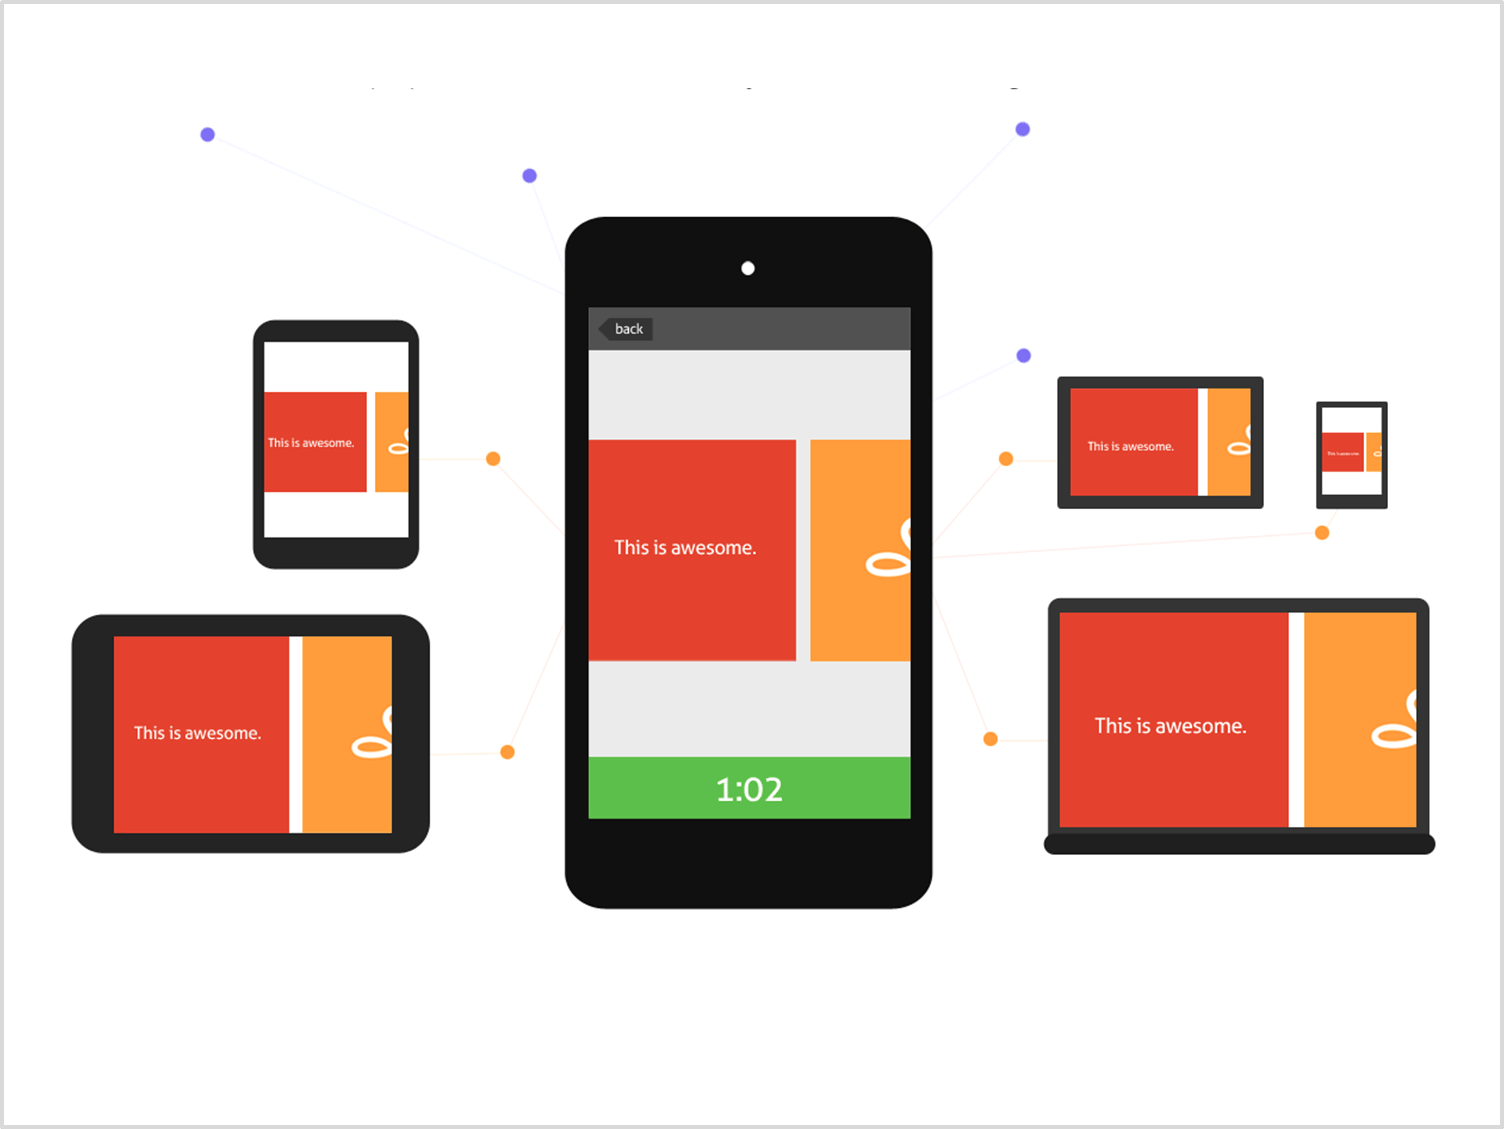 Introducing Swipe - The Free Presentation Software That Lets You Create & Share Across Multiple Devices